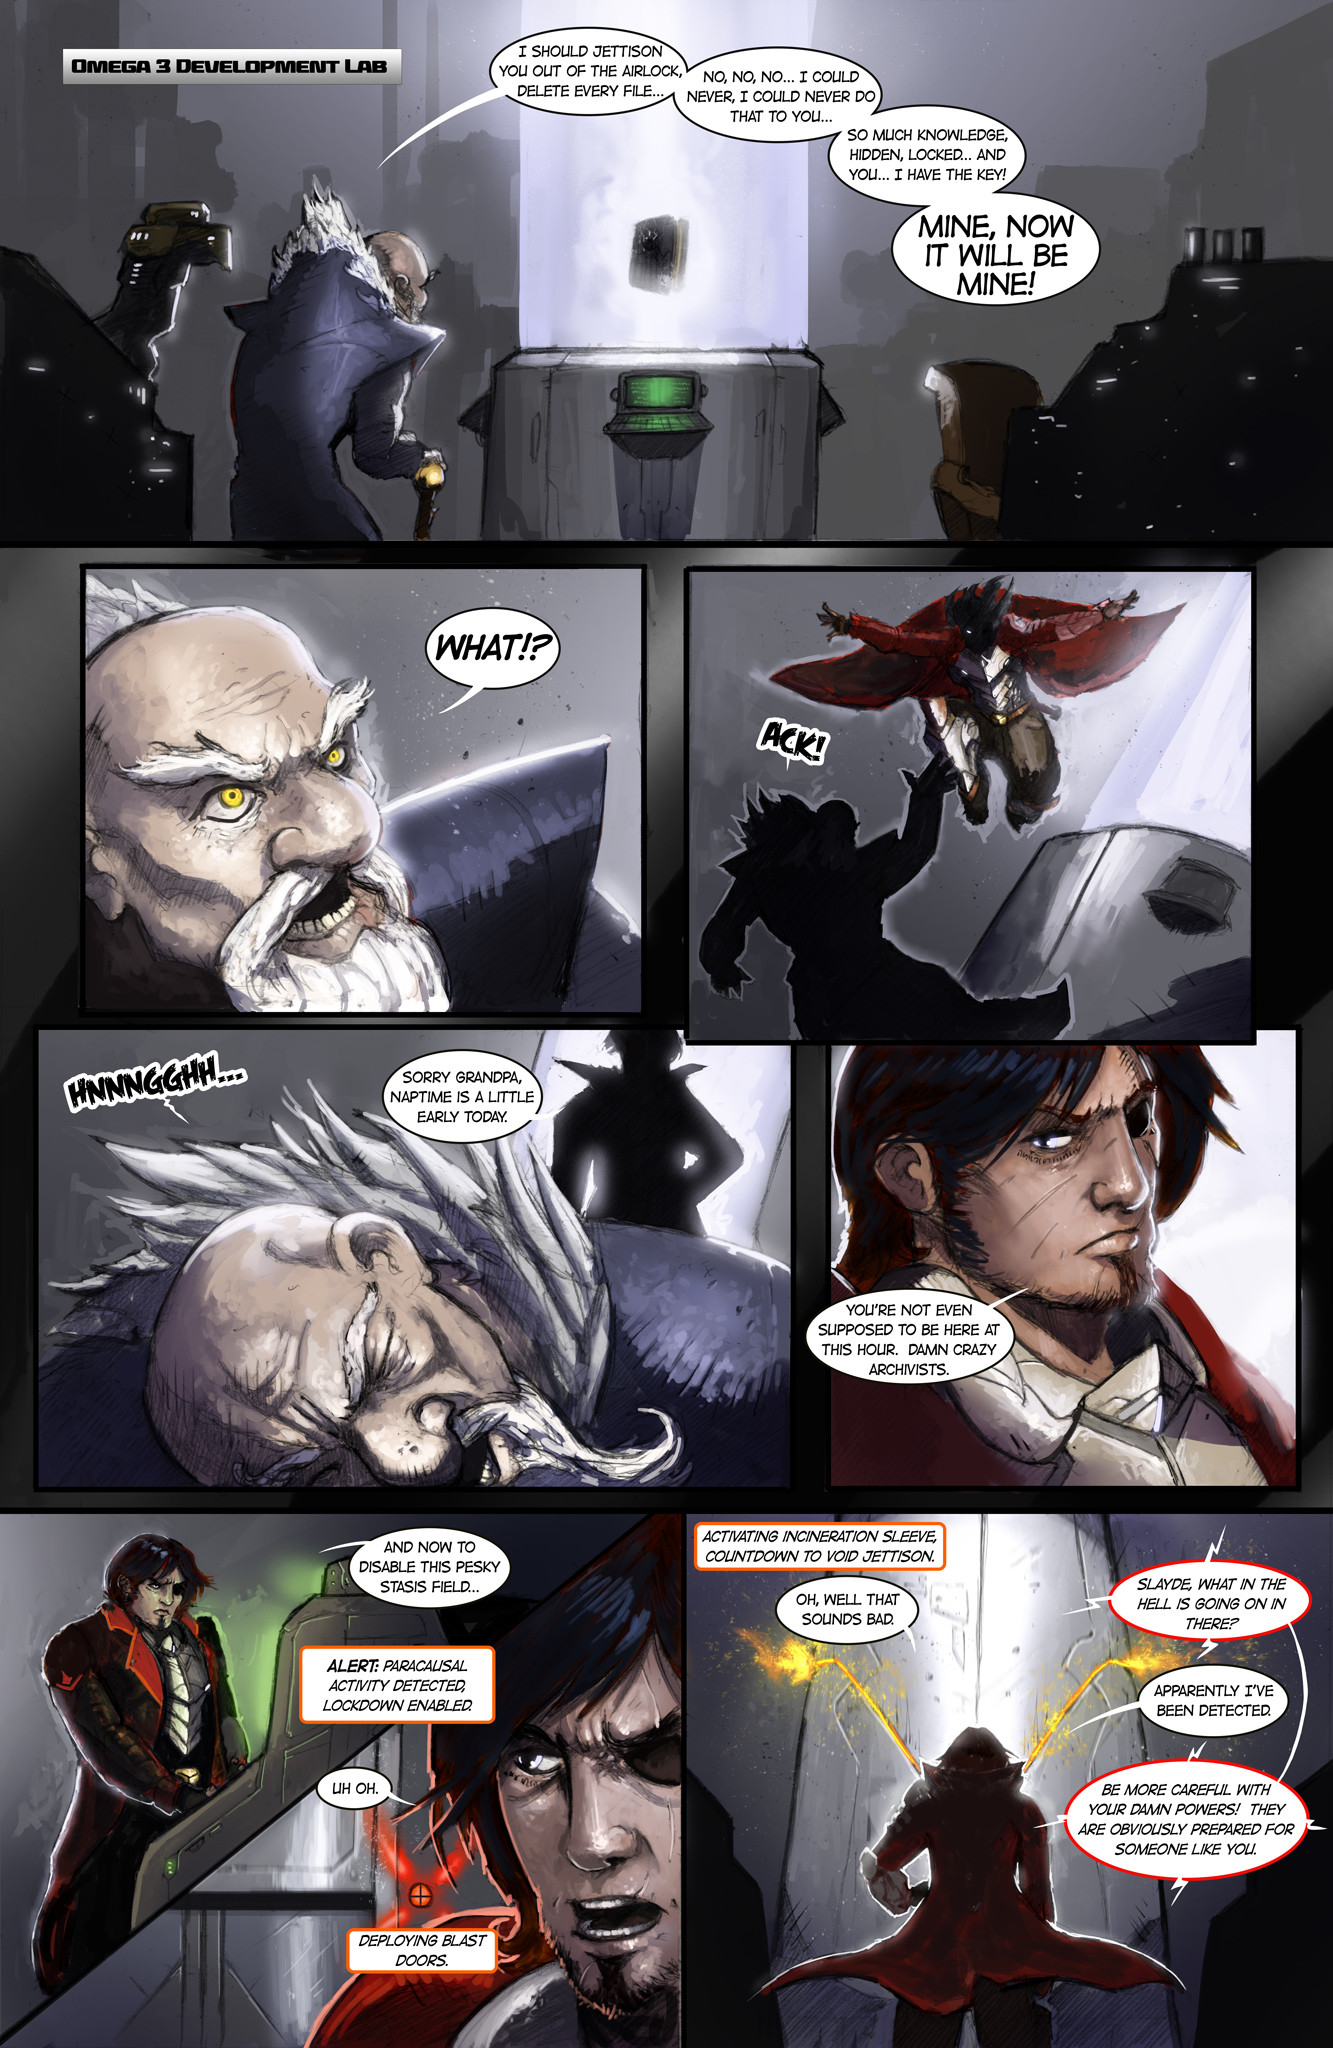 Michael rookard chapter1 page2